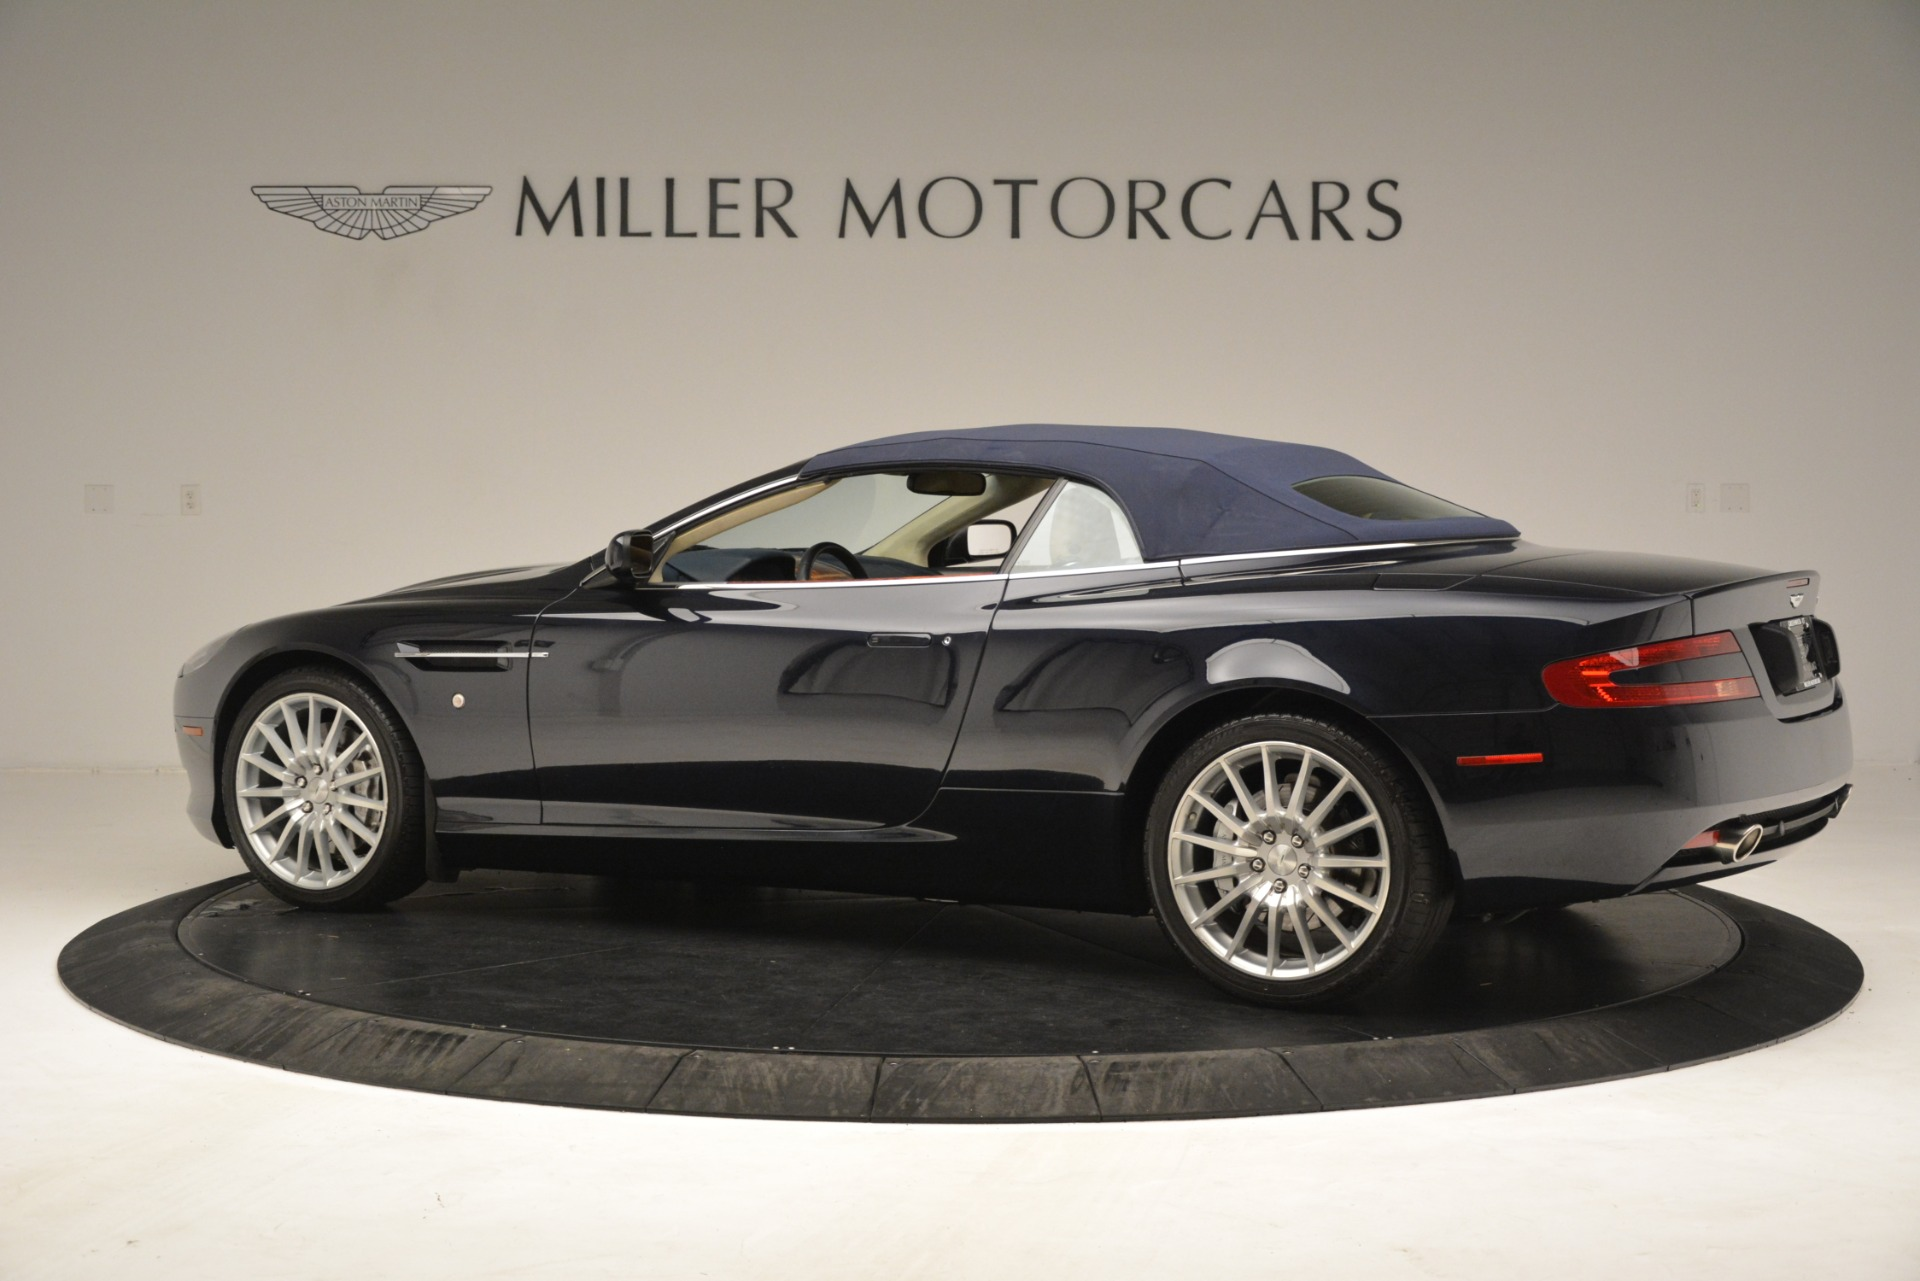 Used 2007 Aston Martin DB9 Convertible For Sale In Greenwich, CT 3291_p25